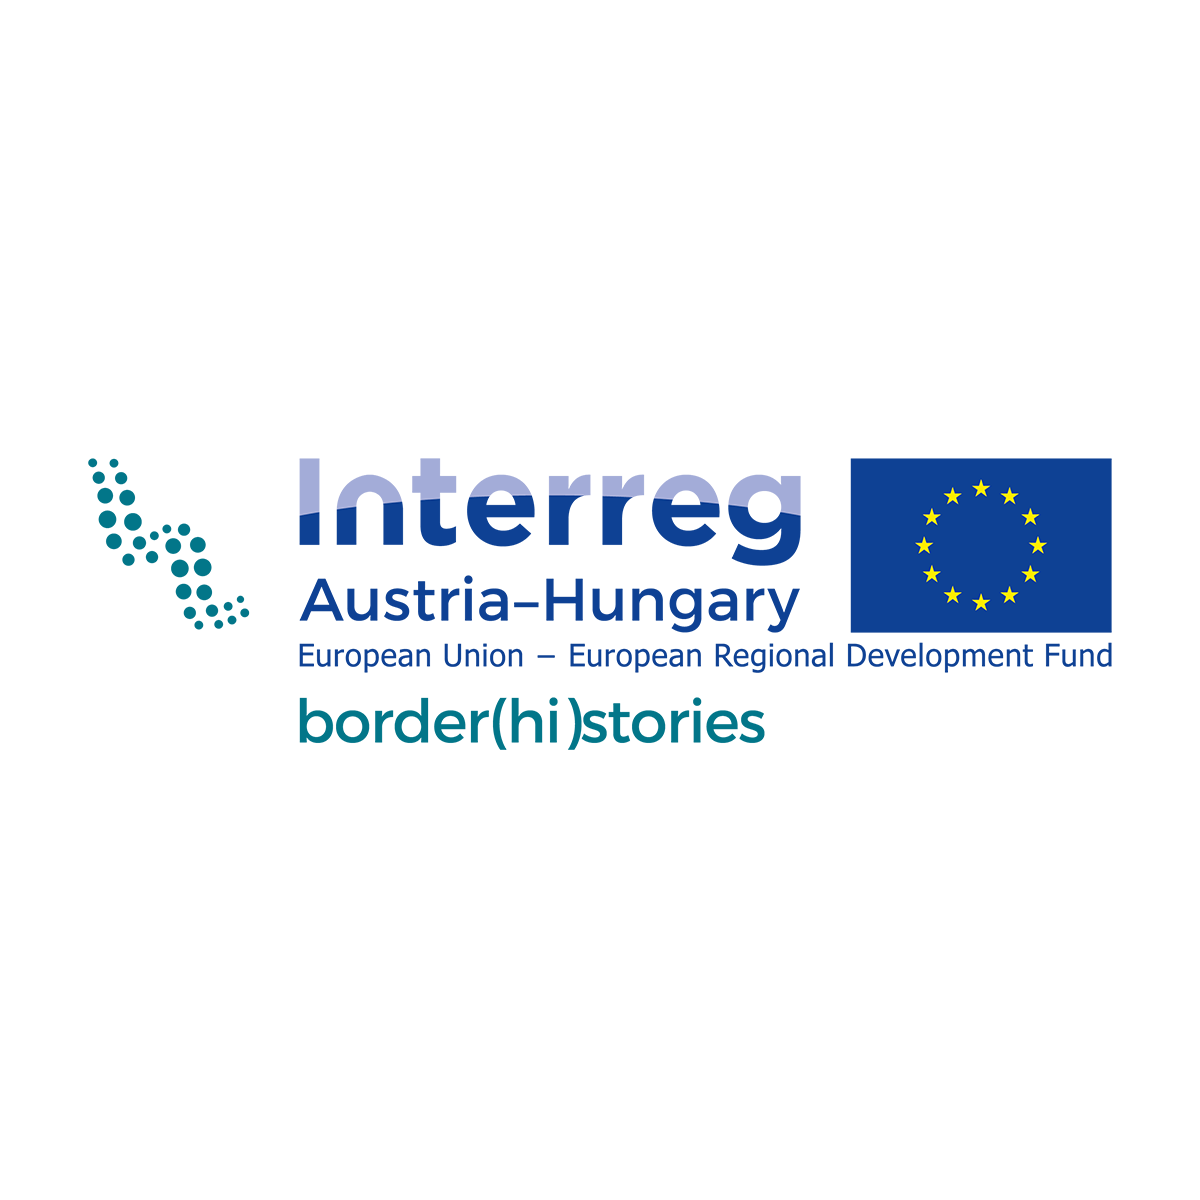 Logo Interreg Austria - Hungary. European Union - European Regional Development Fund. border(hi)stories), rechts davon blaue EU-Flagge